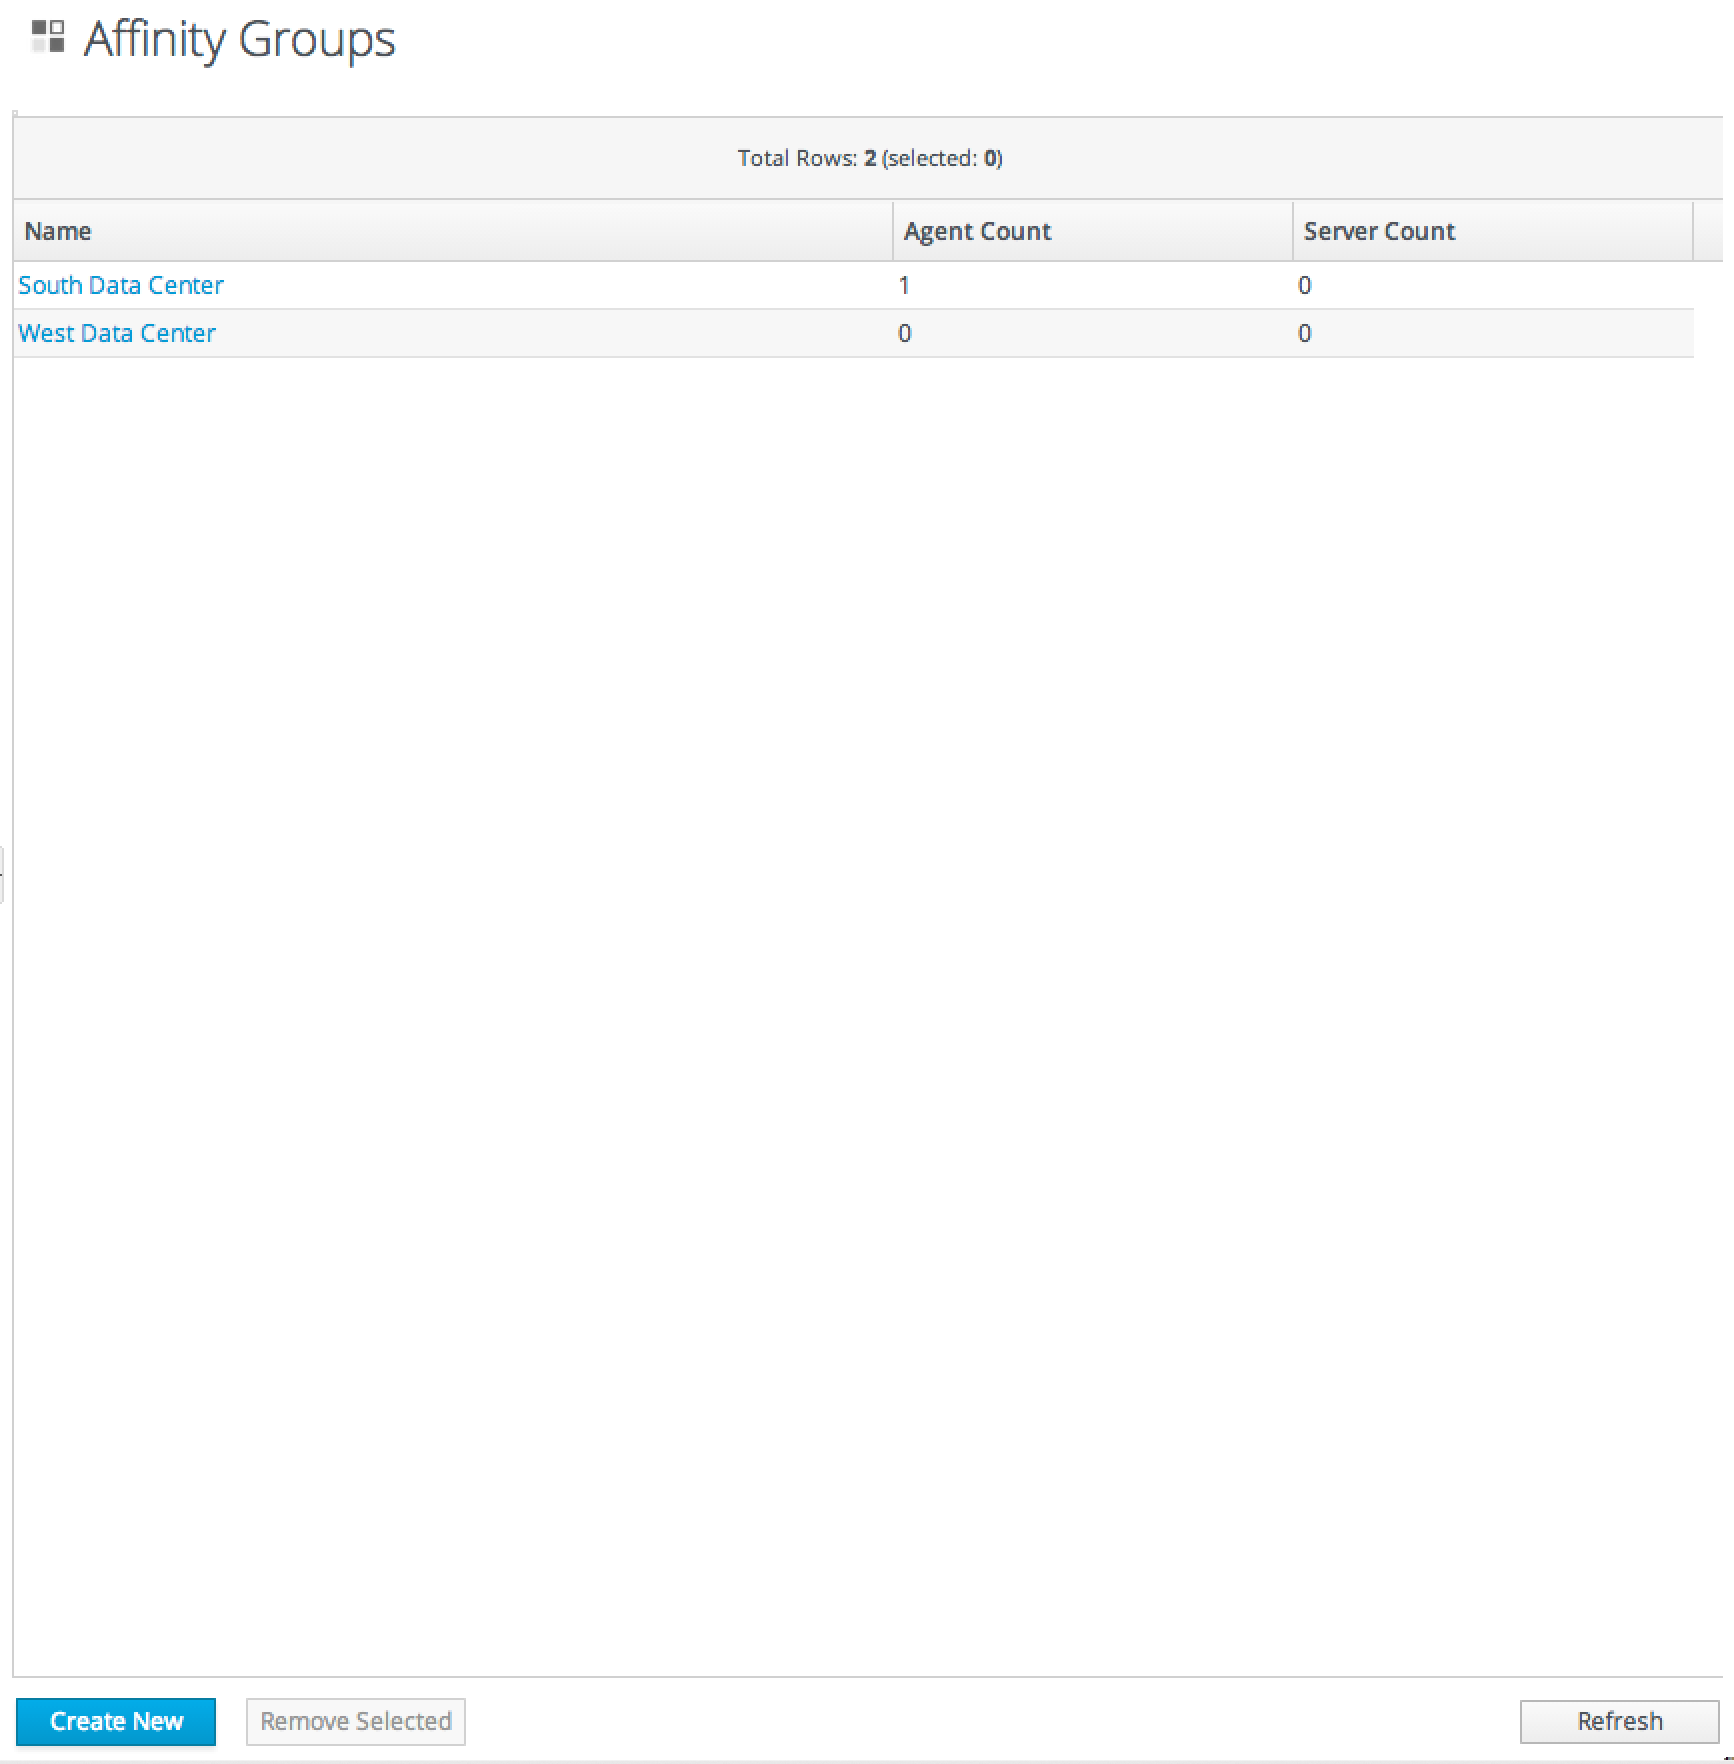 Listing Affinity Groups